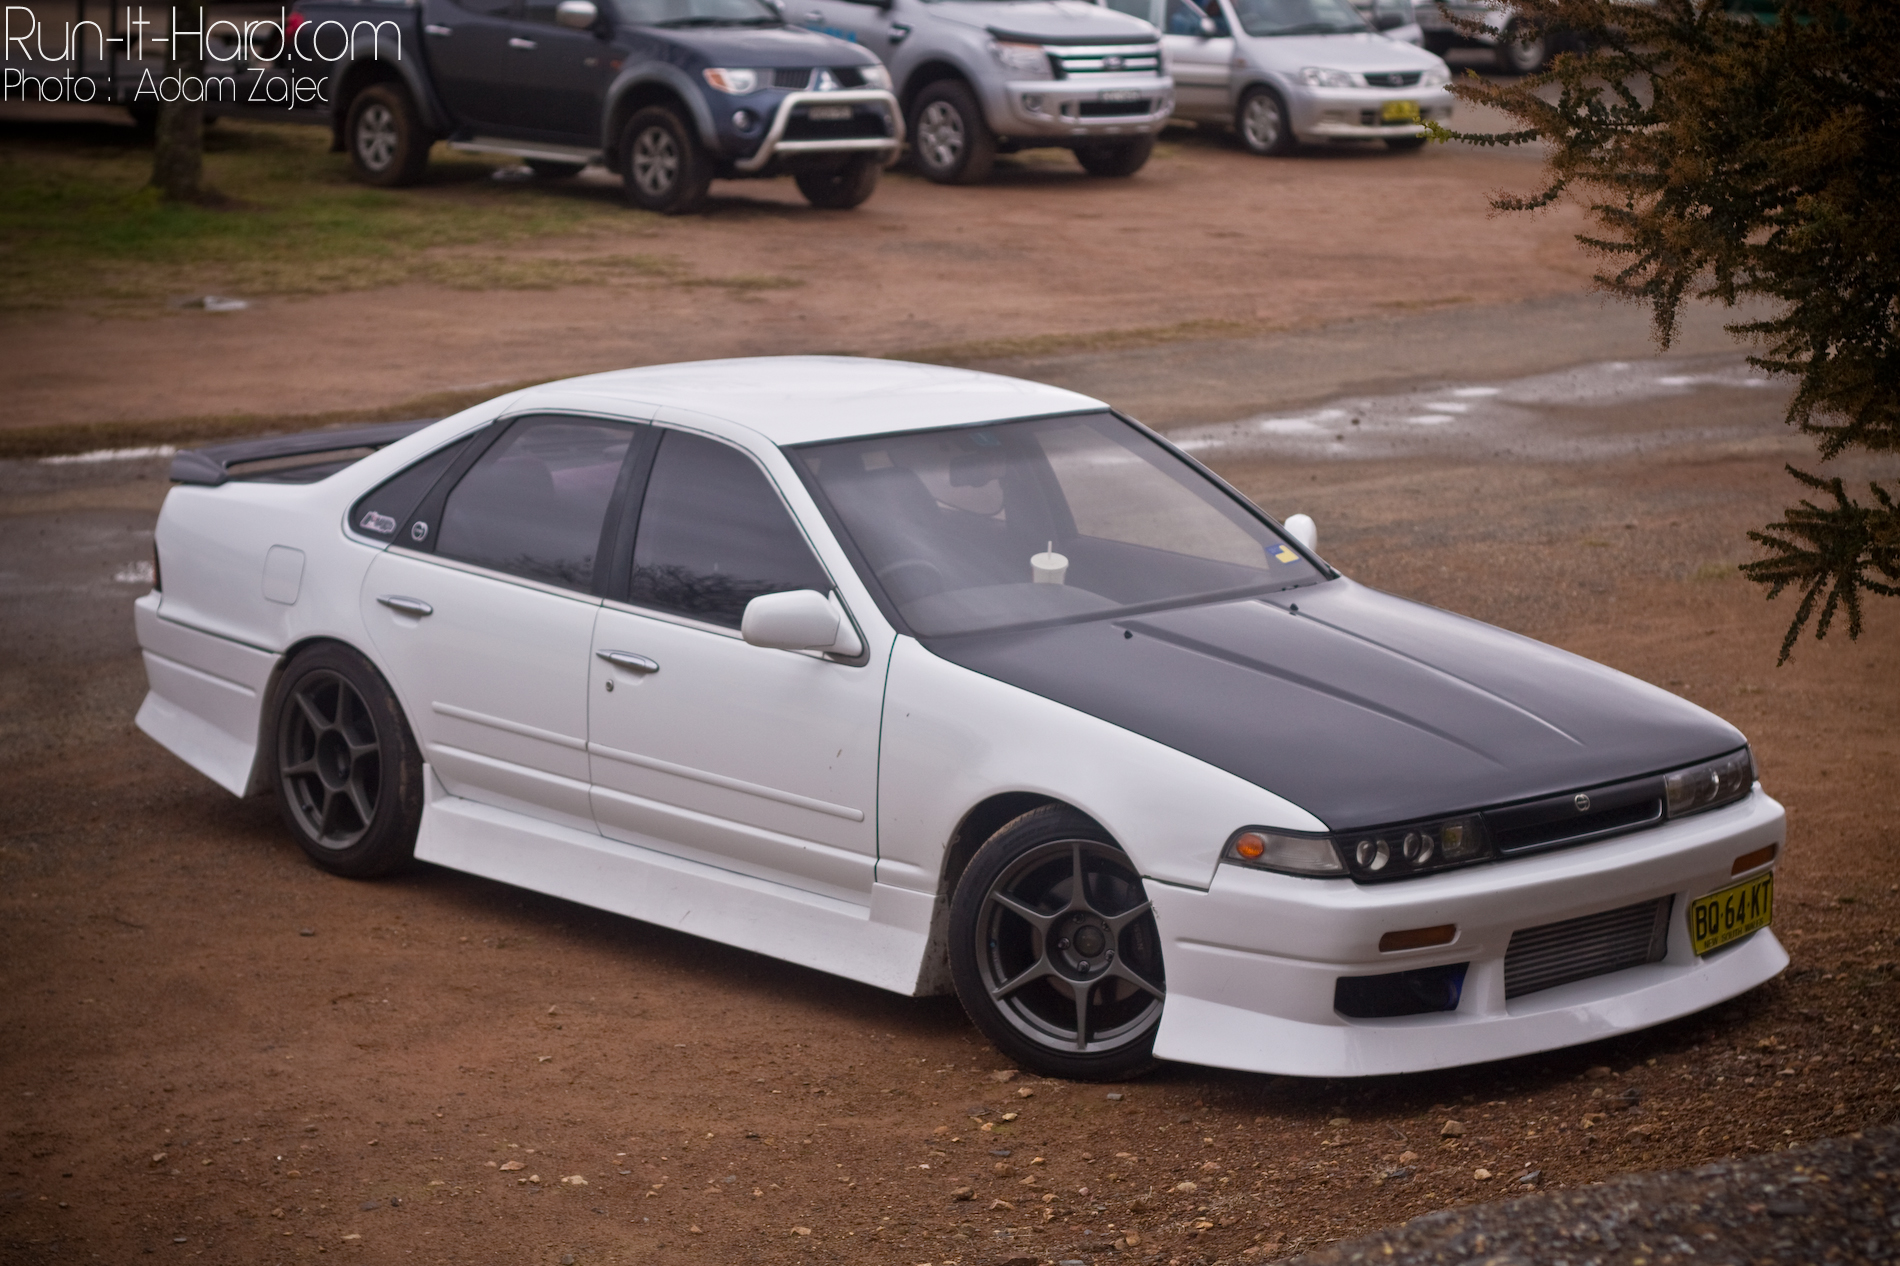 Nissan cefiro photo - 2